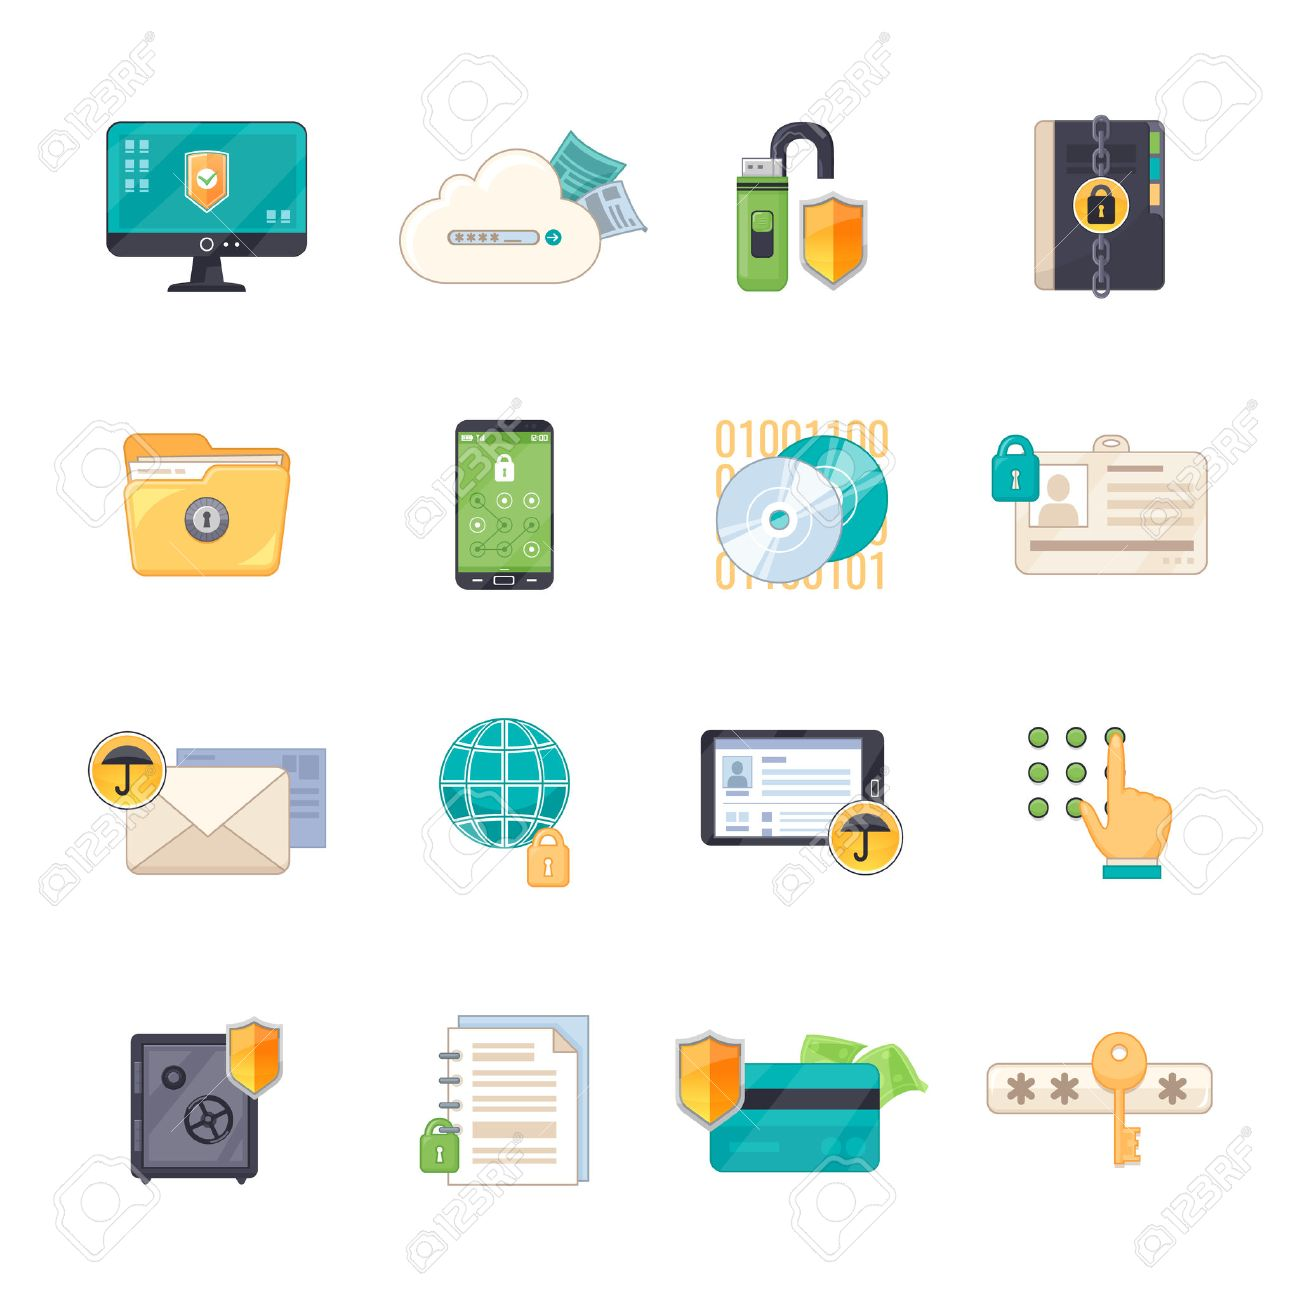 Safe personal data storage and online information exchange software protection shield flat icons set isolated vector illustration - 65401205